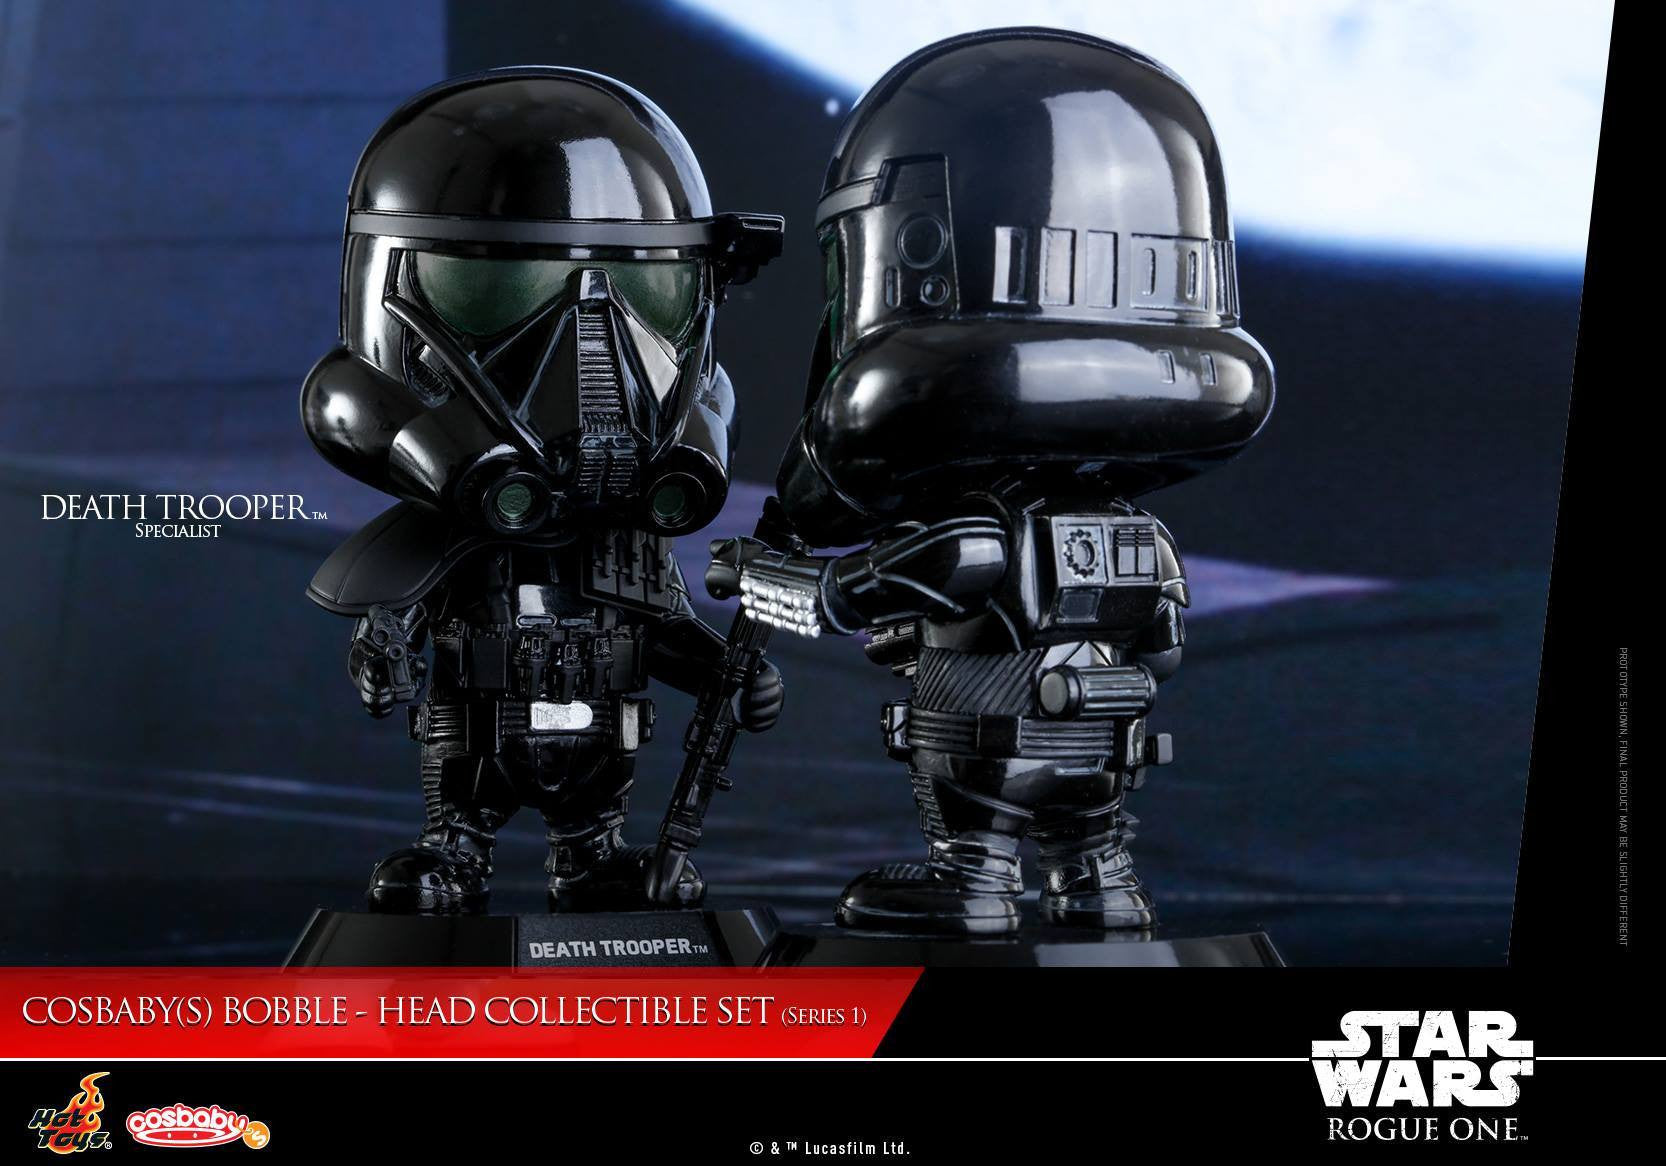 (IN STOCK) Hot Toys - COSB335 - Rogue One: A Star Wars Story - Cosbaby Bobble-Head (Series 1) Set of 6 - Marvelous Toys - 2